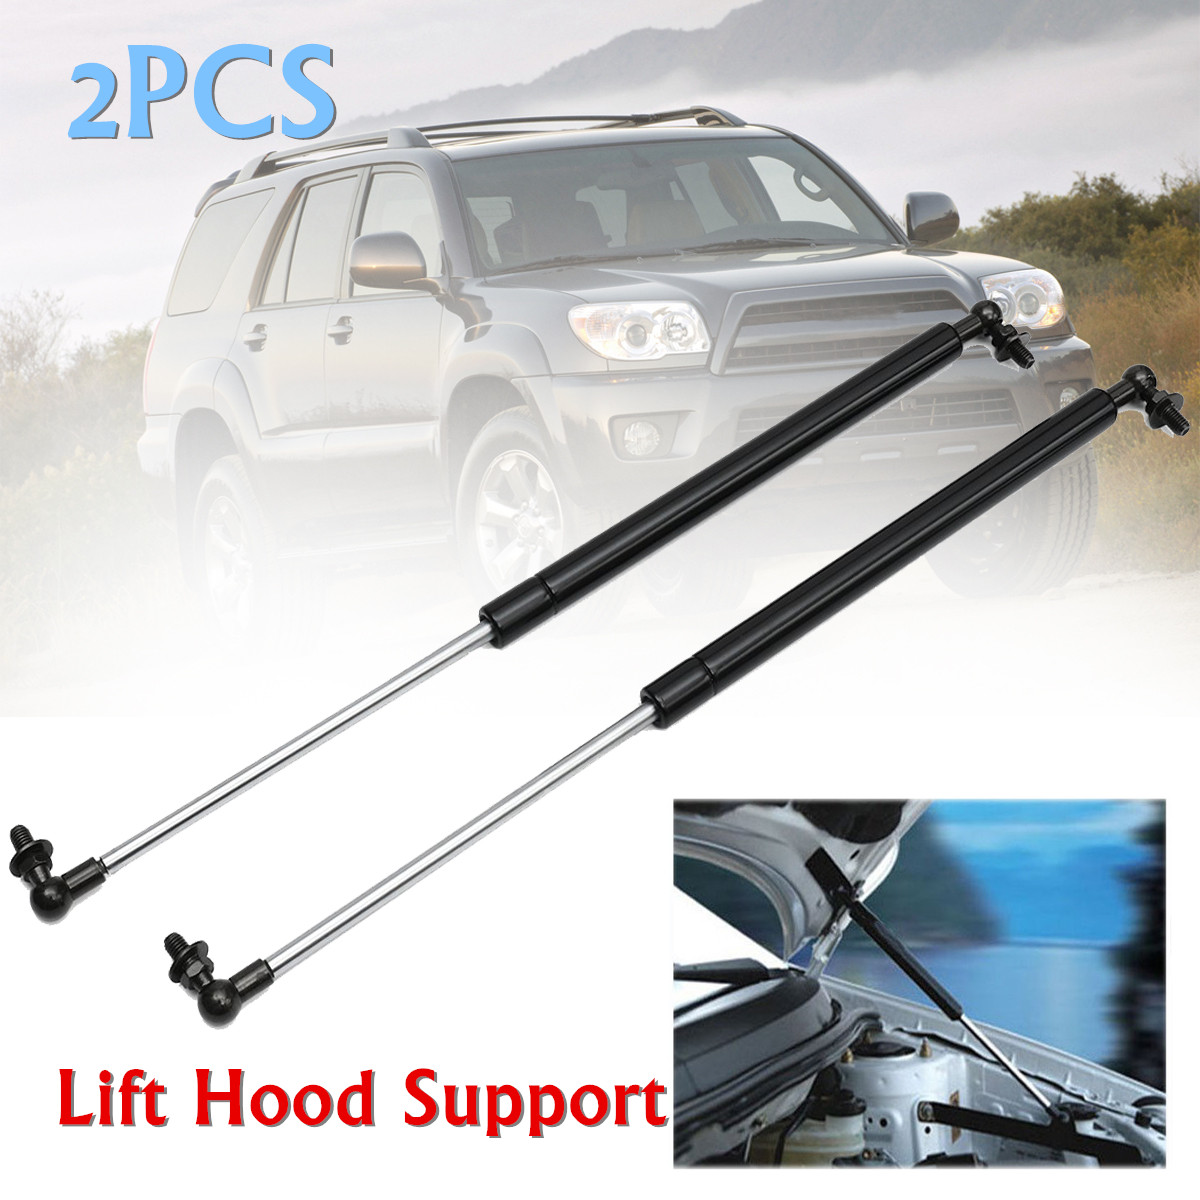 AUTOSAVER88 Front Hood Lift Supports Compatible with Toyota 4Runner 2003 2004 2005 2006 2007 2008 2009 for 2003-2009 Lexus GX470 Hood Struts Springs Shocks 2Pcs ATLS1811